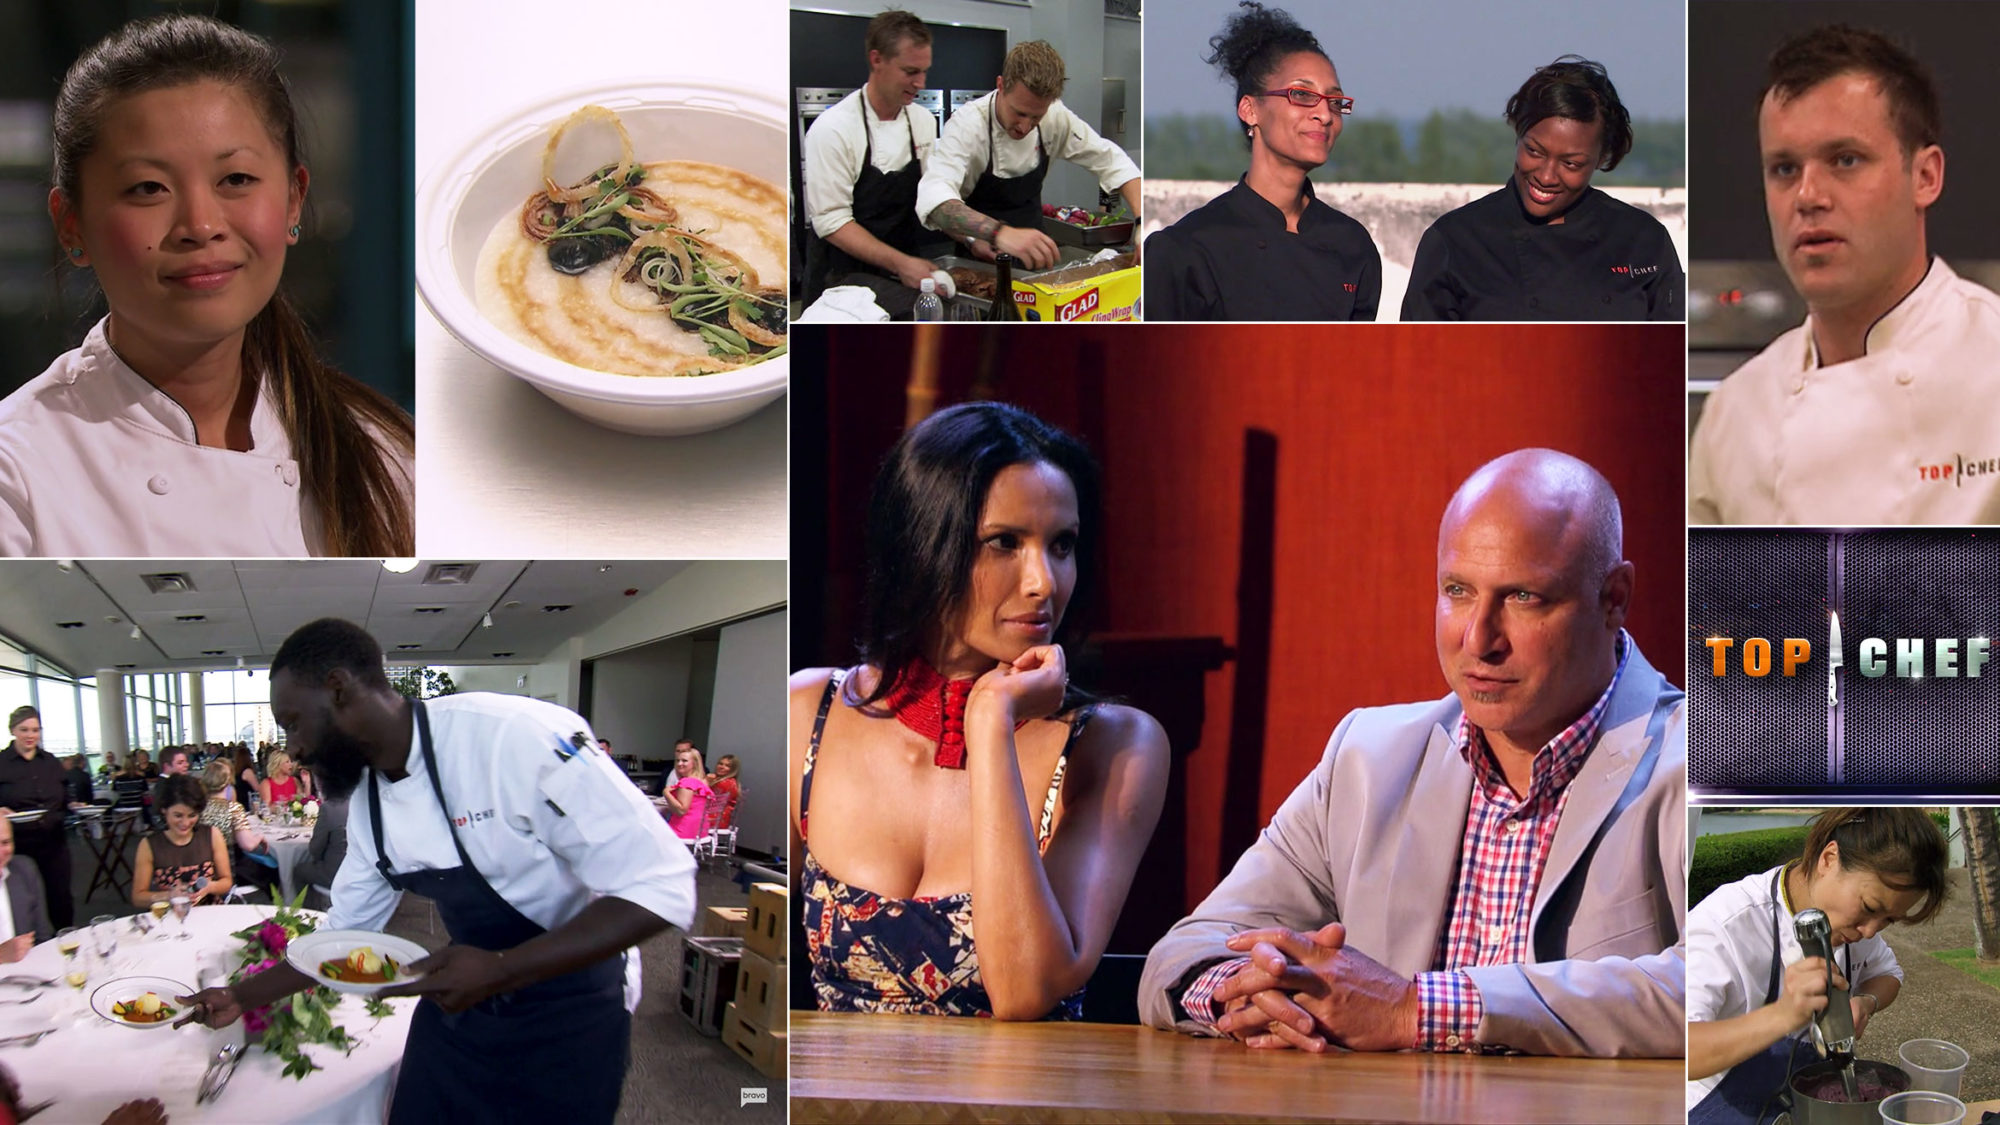 Article-Watching-Top-Chef-Reruns